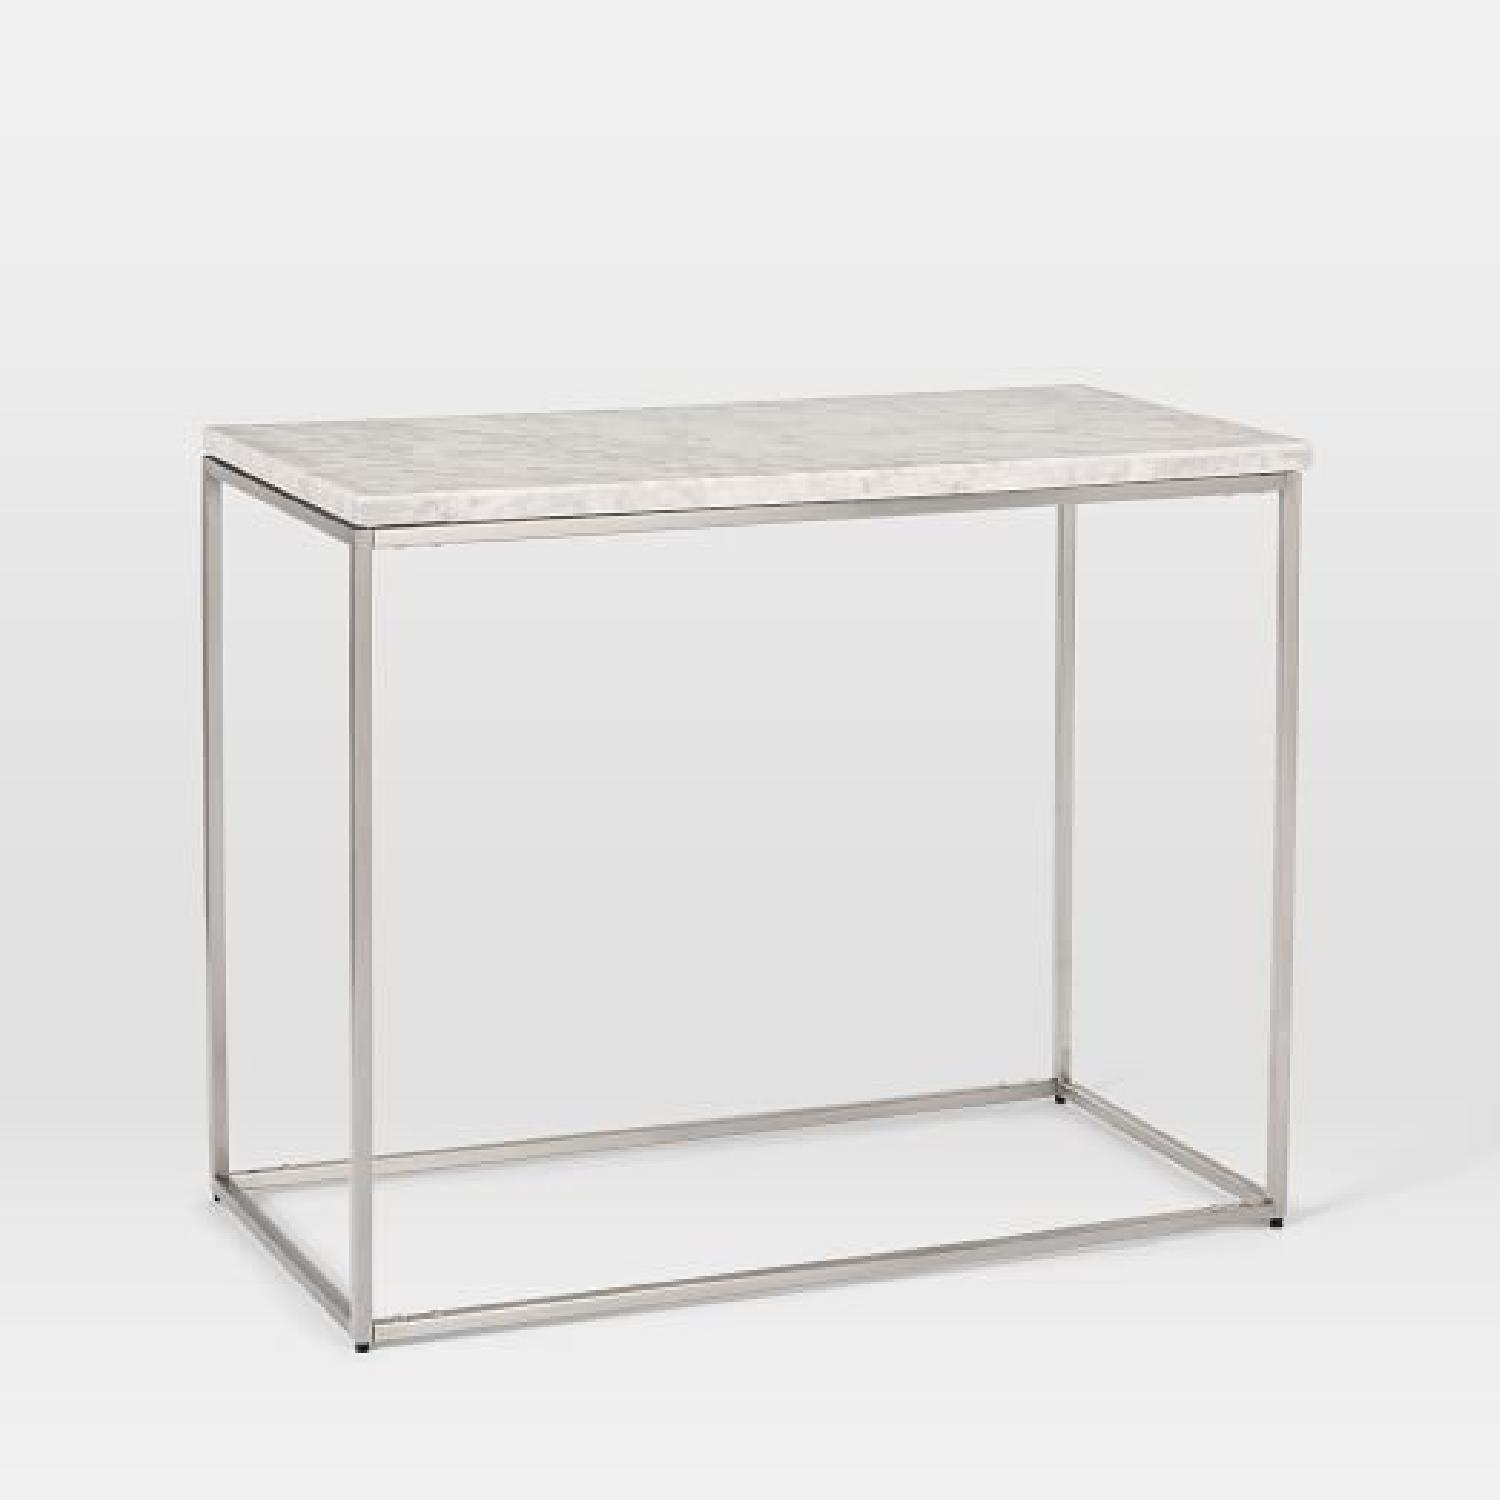 West Elm Marble Streamline Side Table in Satin Chrome - image-1